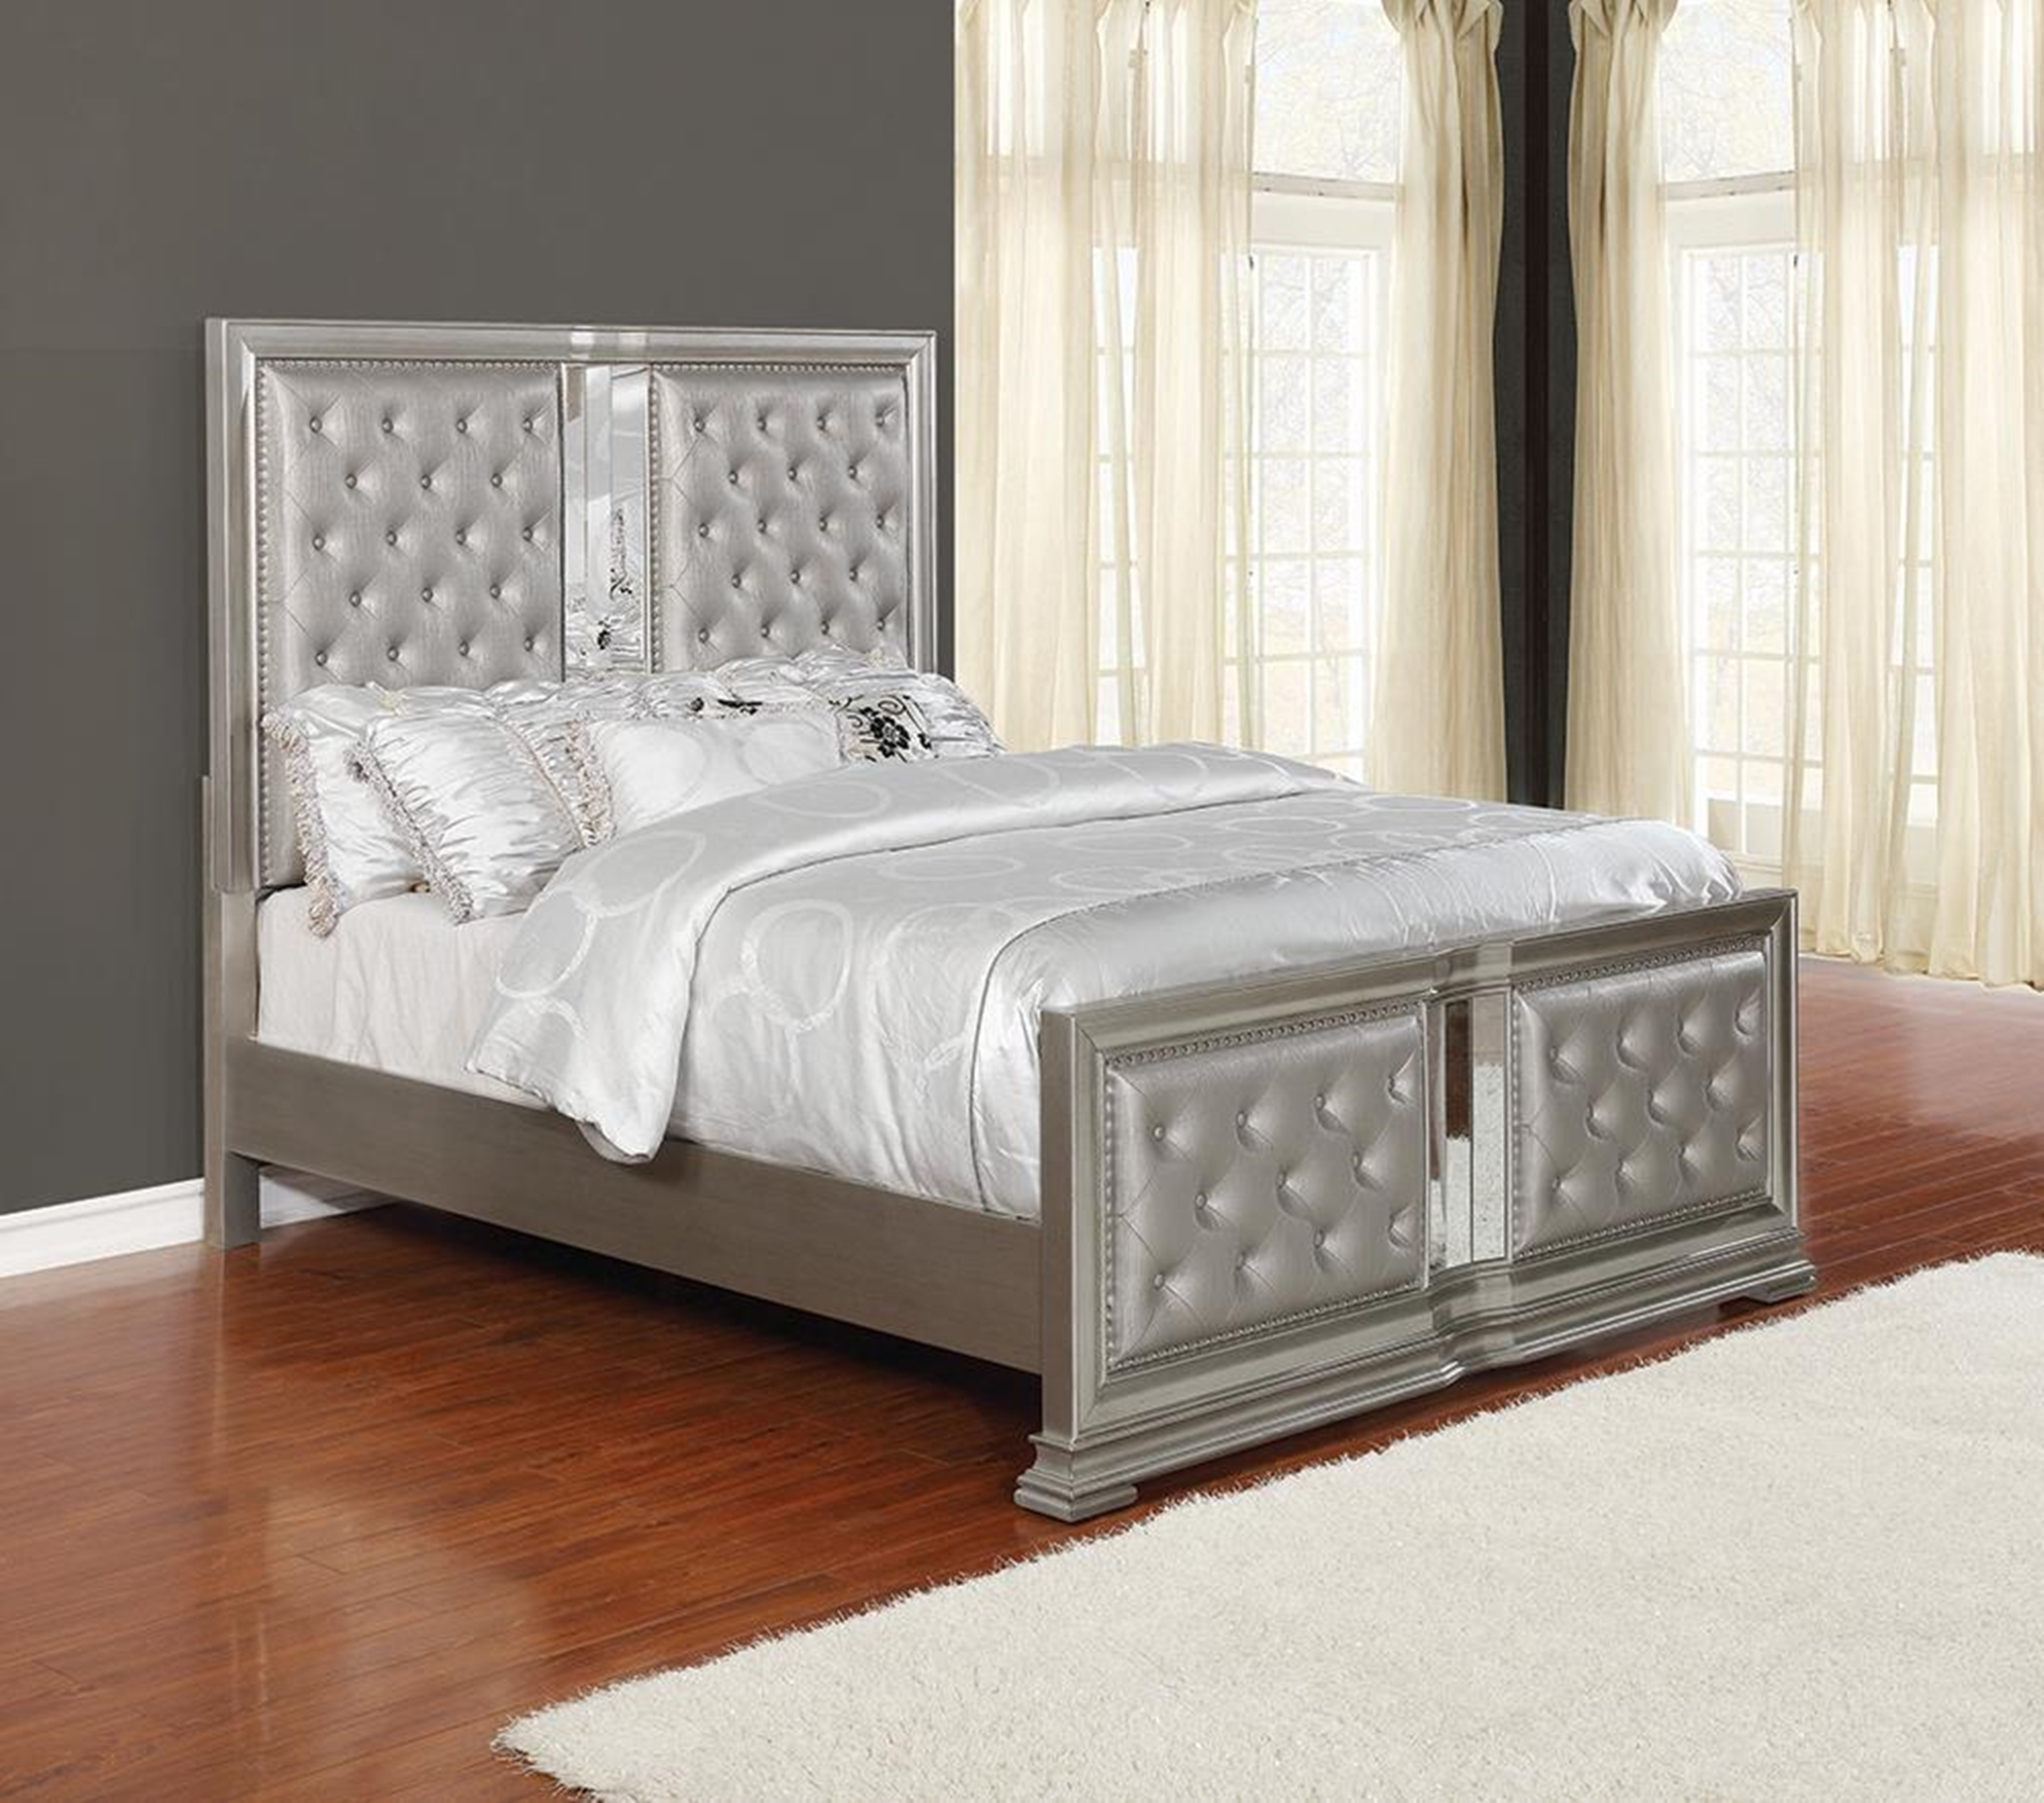 Adele Metallic Queen Bed